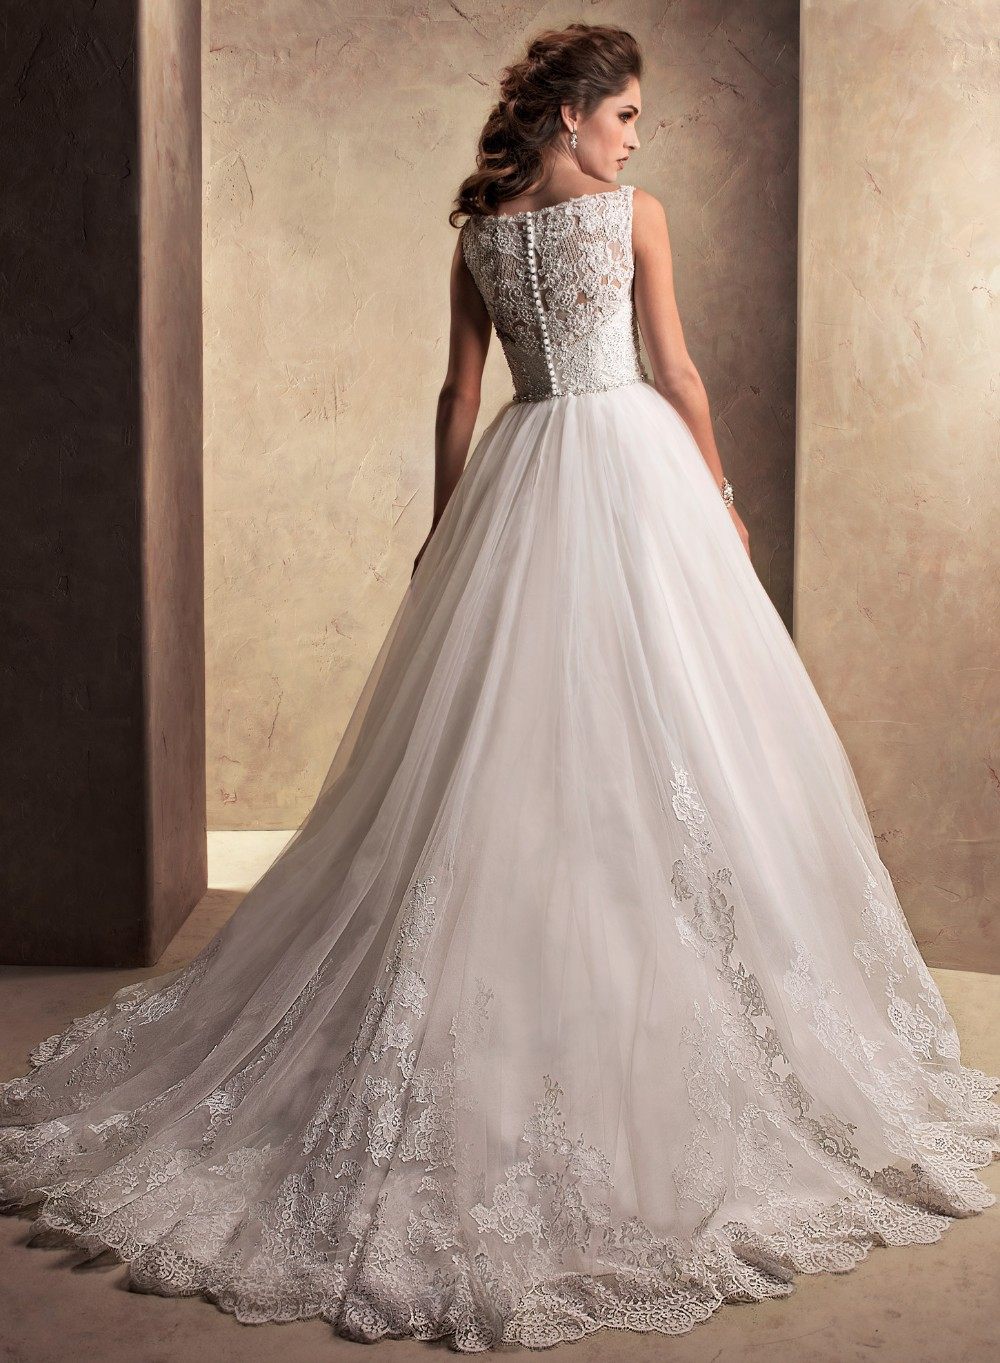 budget princess wedding dress princess style wedding dress Picture Reflections by Jordan wedding dress M wedding dresses for less than